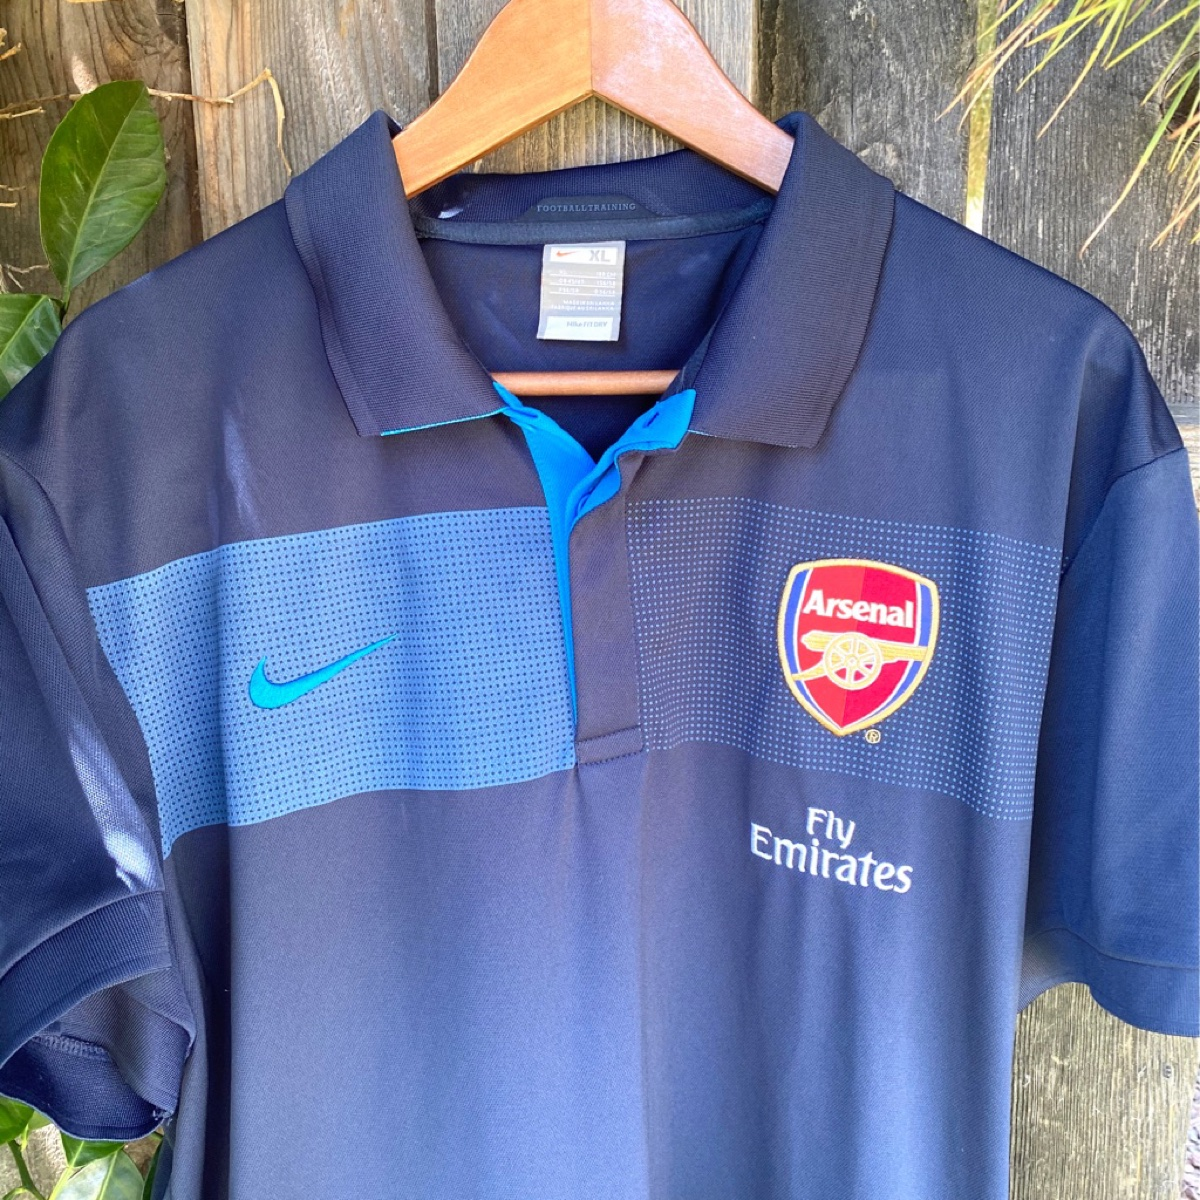 Nike Arsenal polo shirt